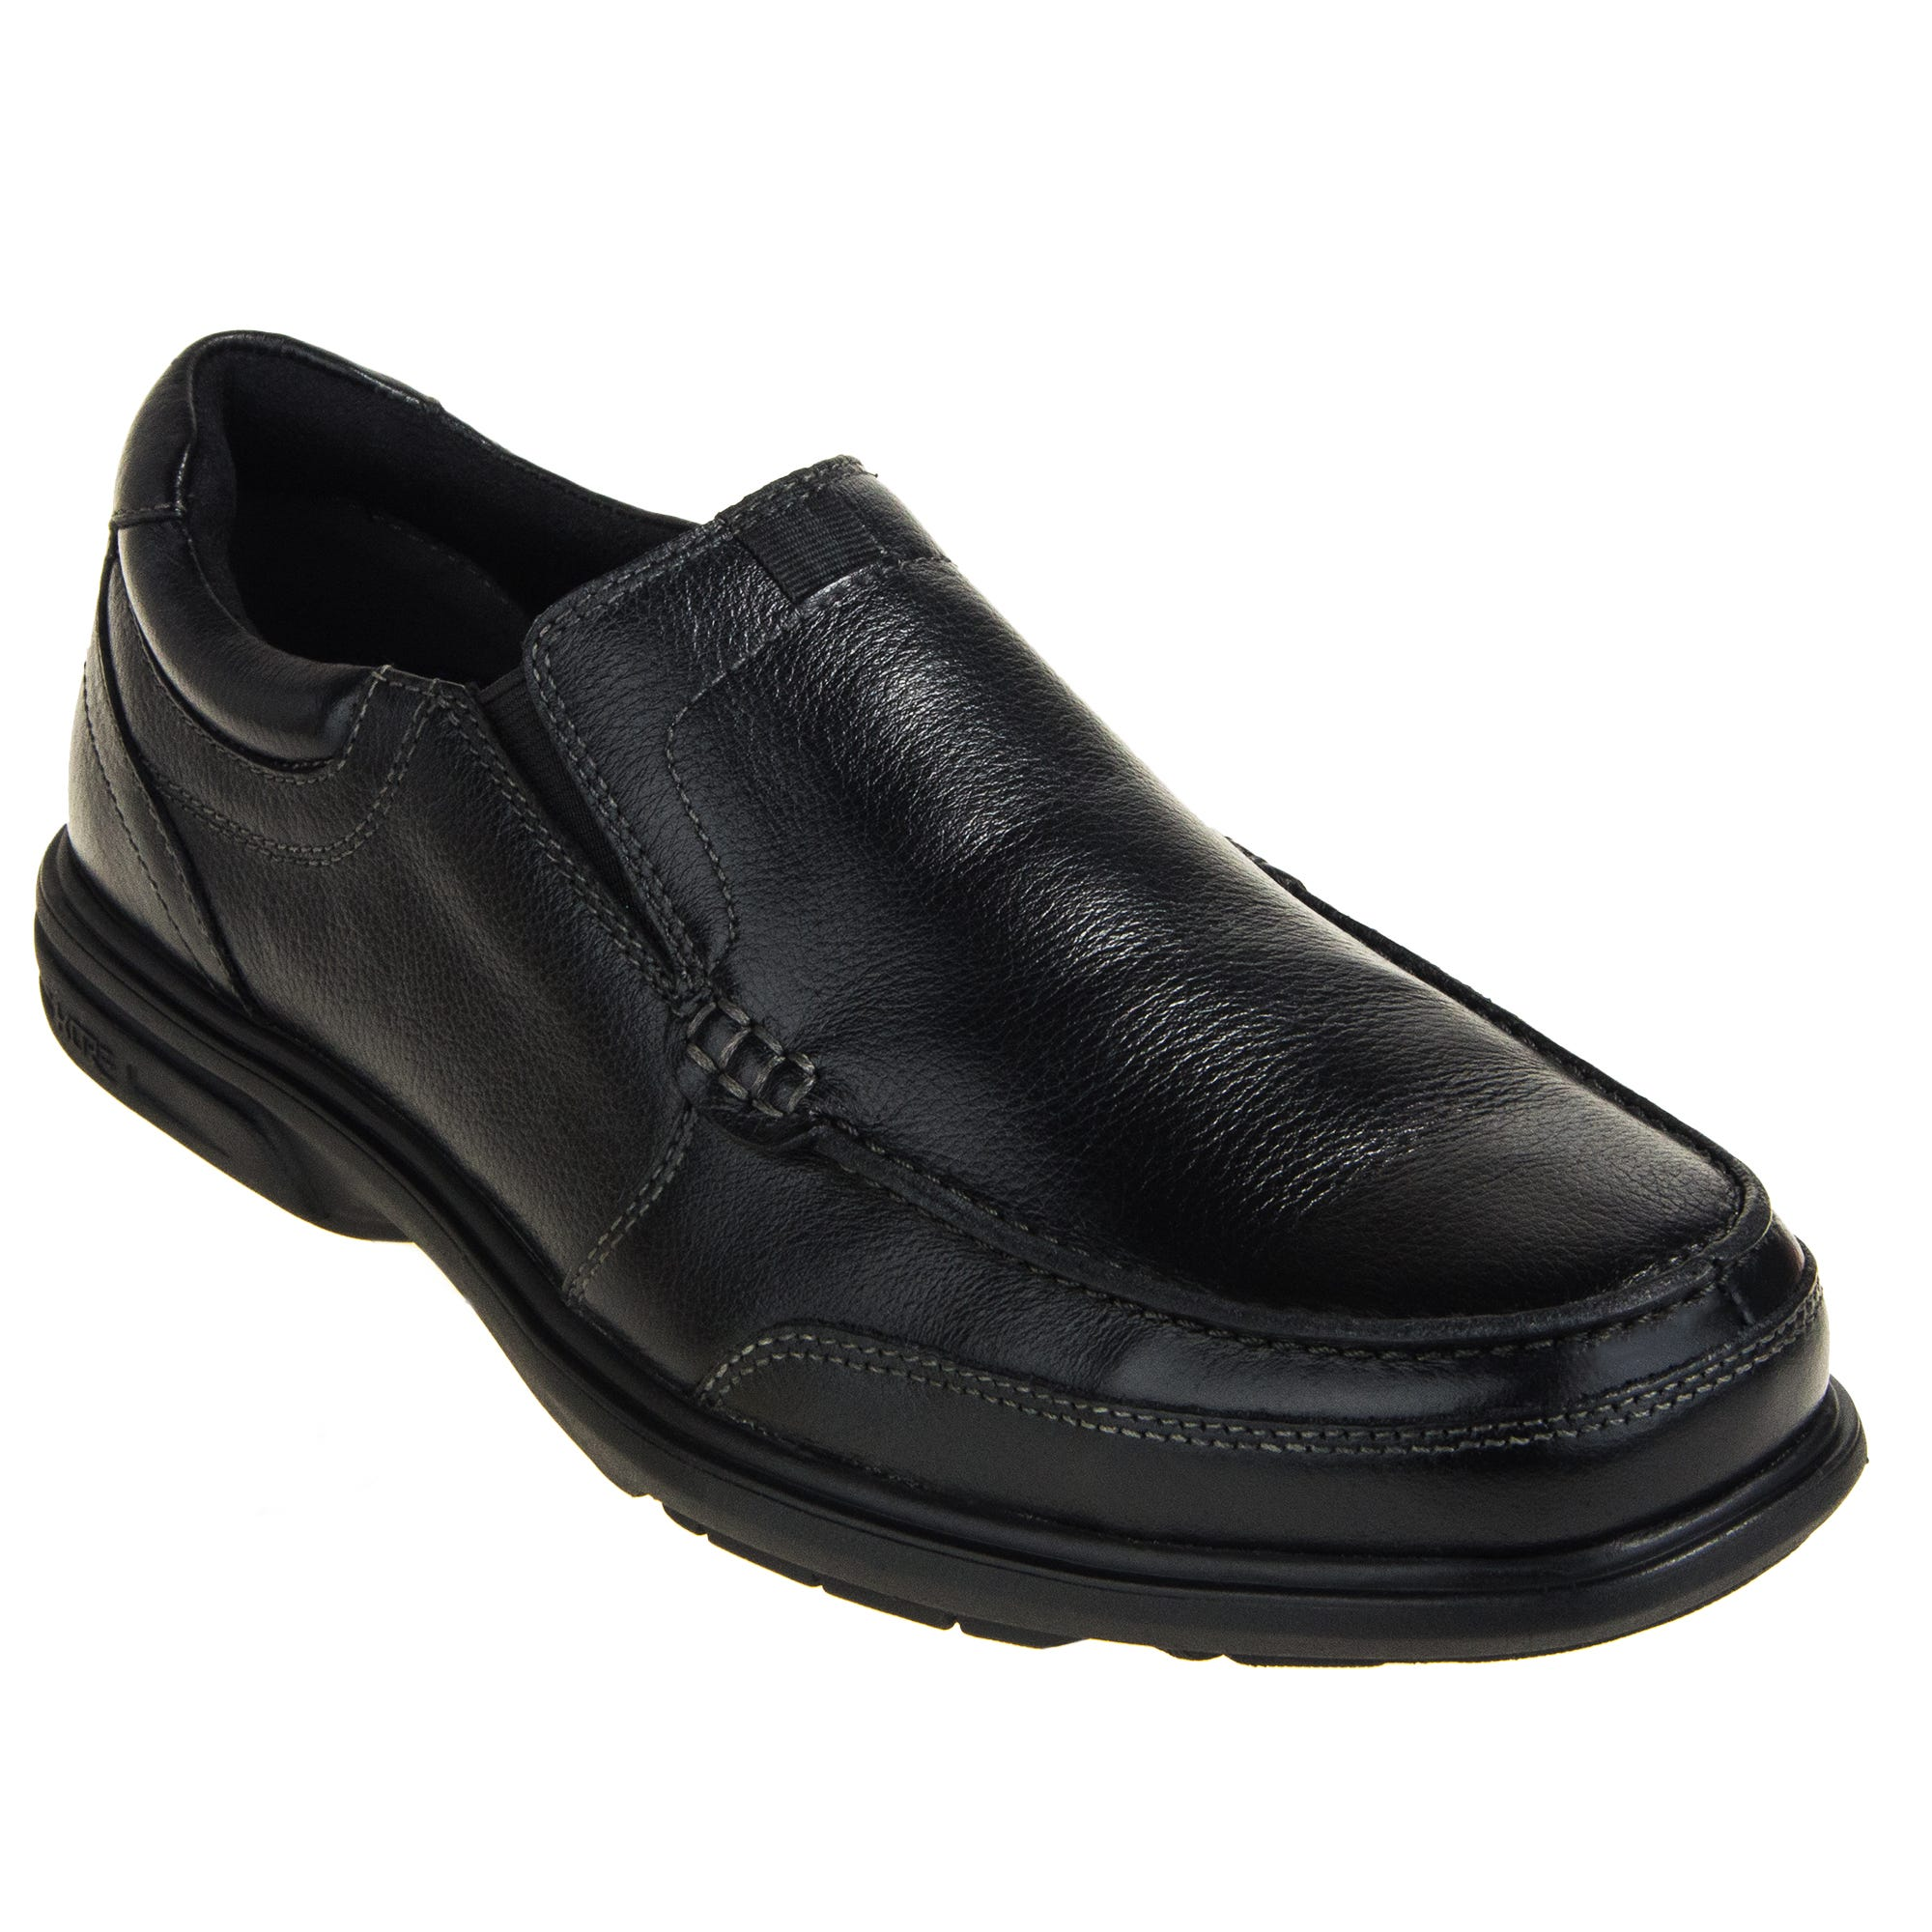 ada3c62b326 Florsheim FE2020 Men s Black Loedin ST EH SR Slip-On Oxfords